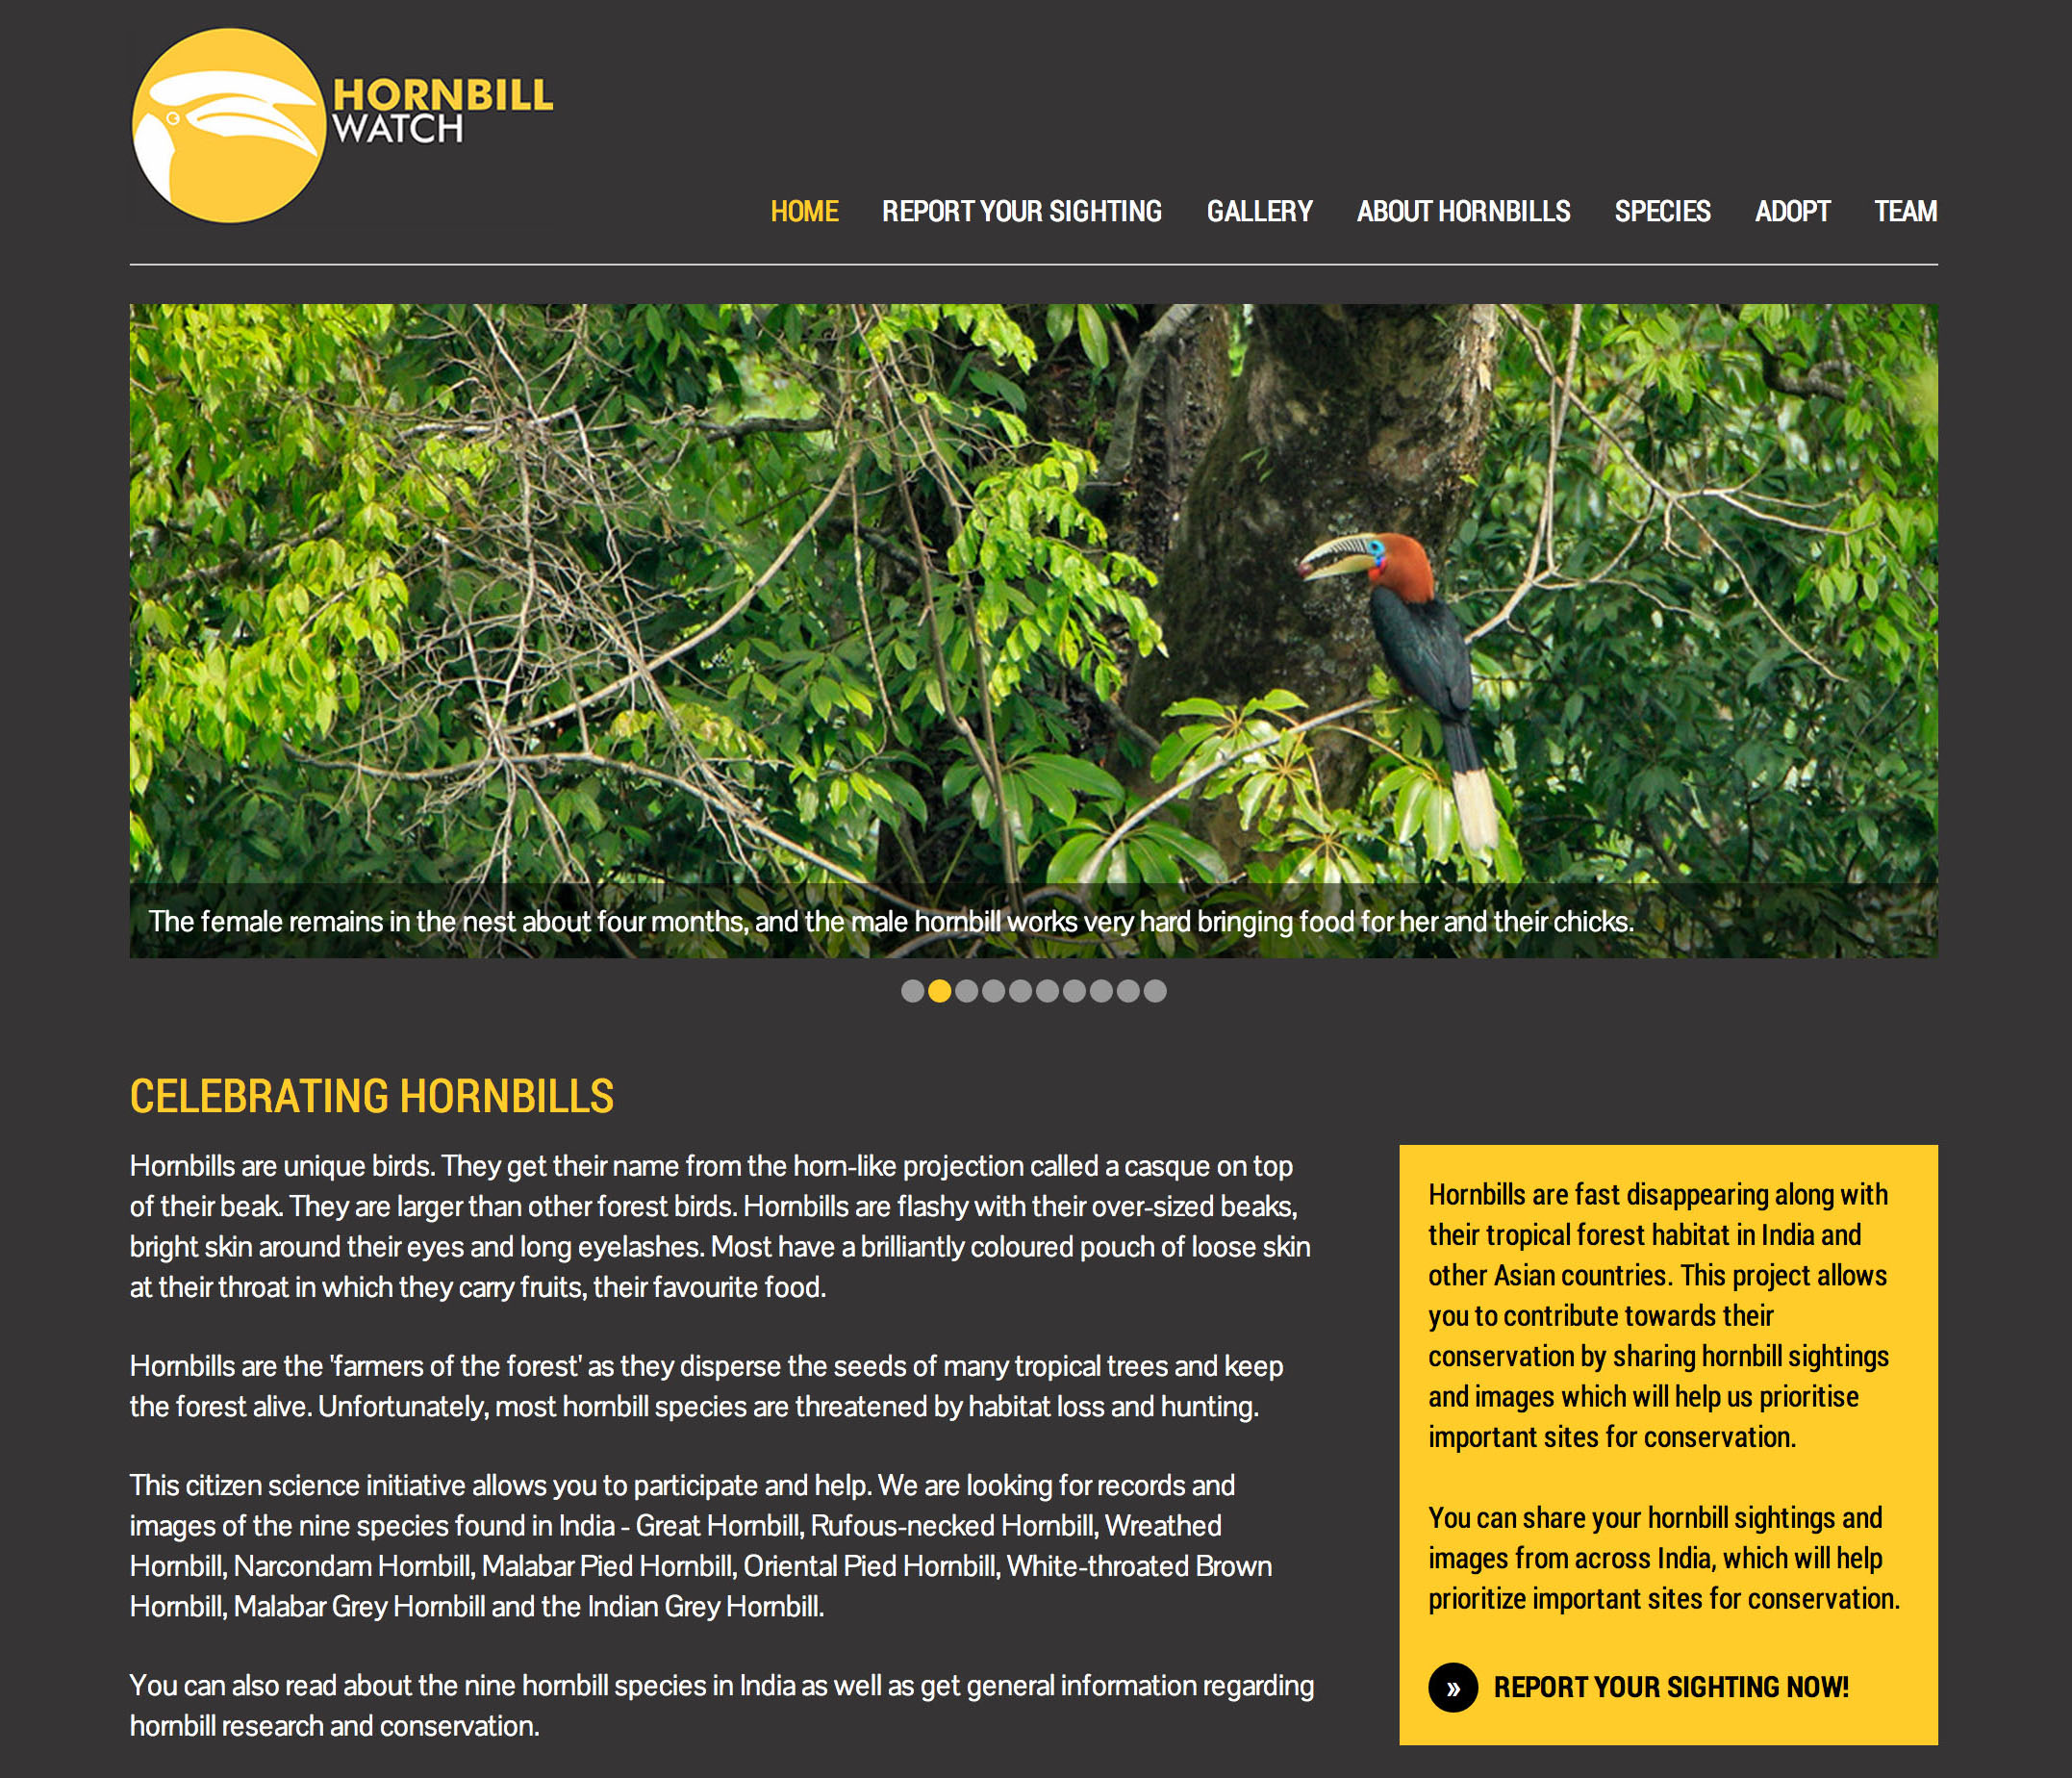 hornbill watch for website